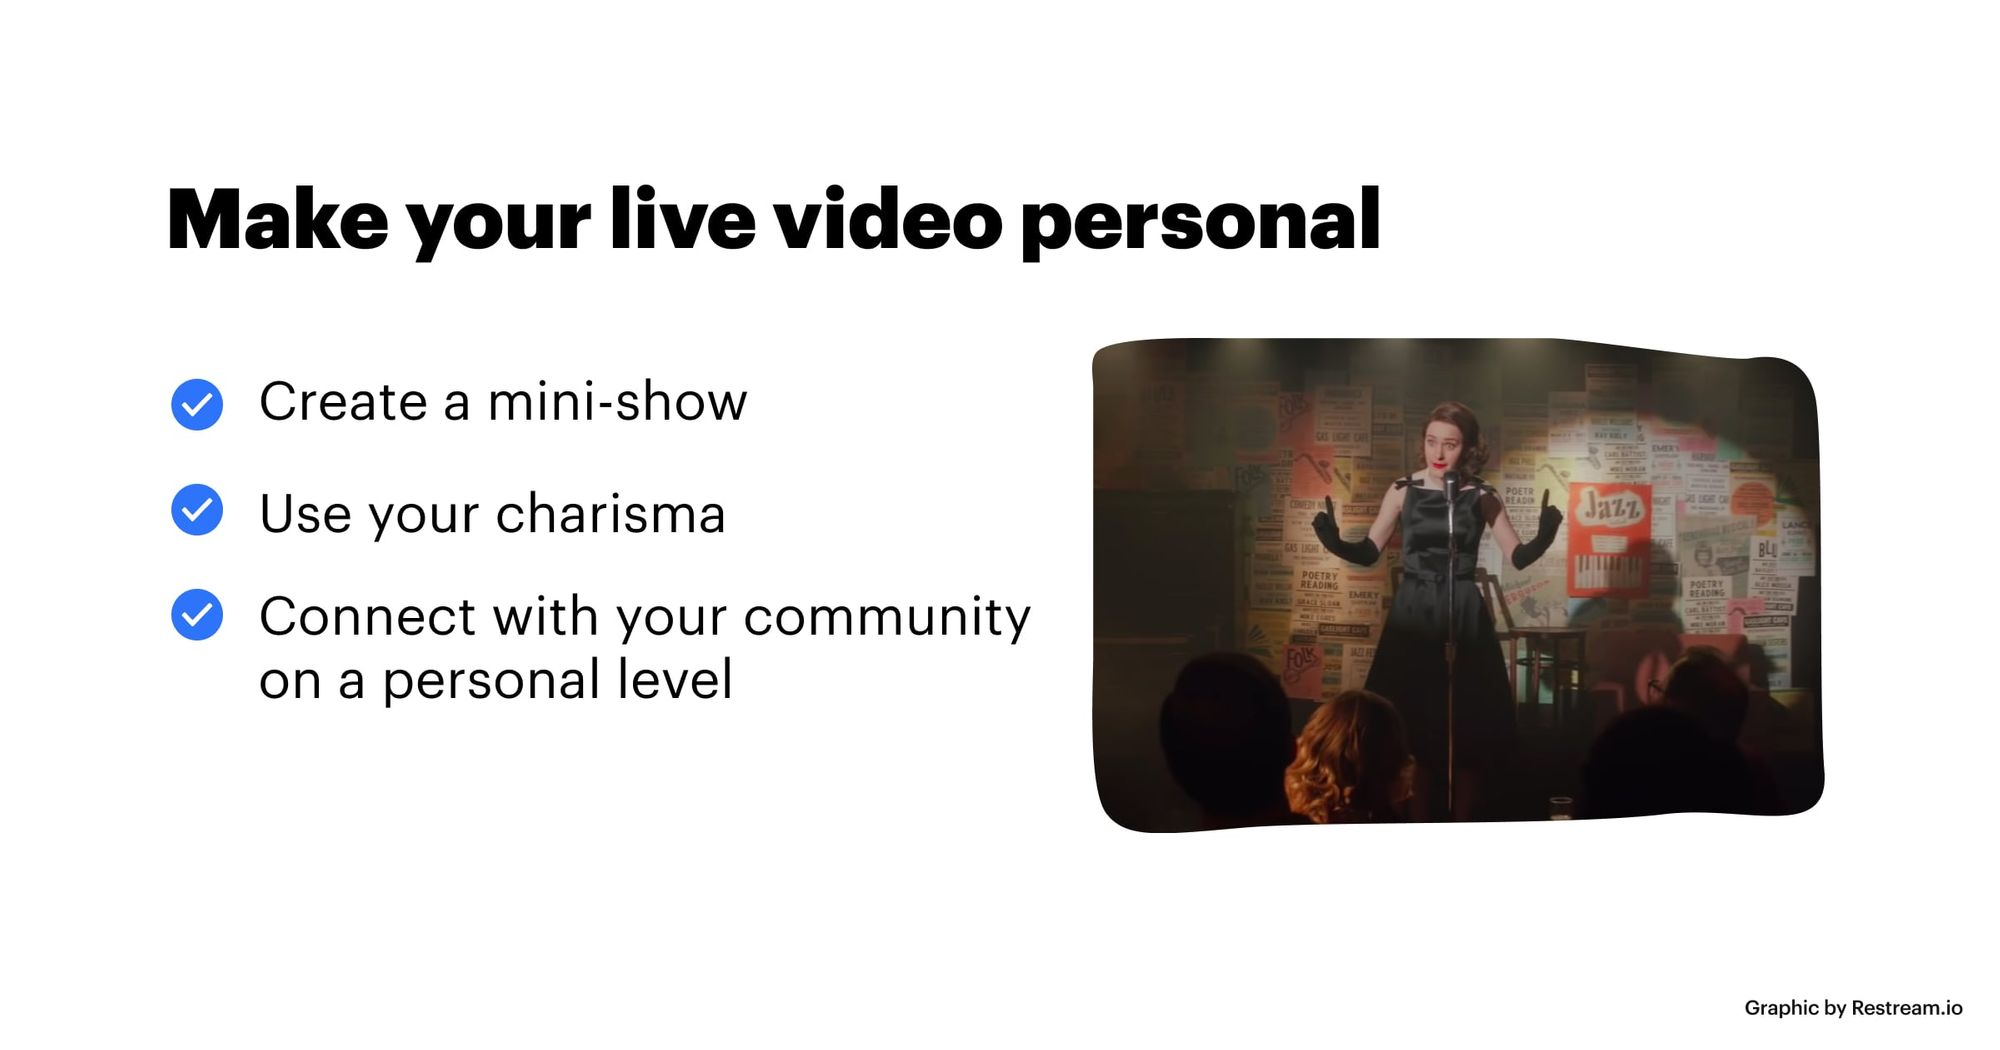 Make your live video personal